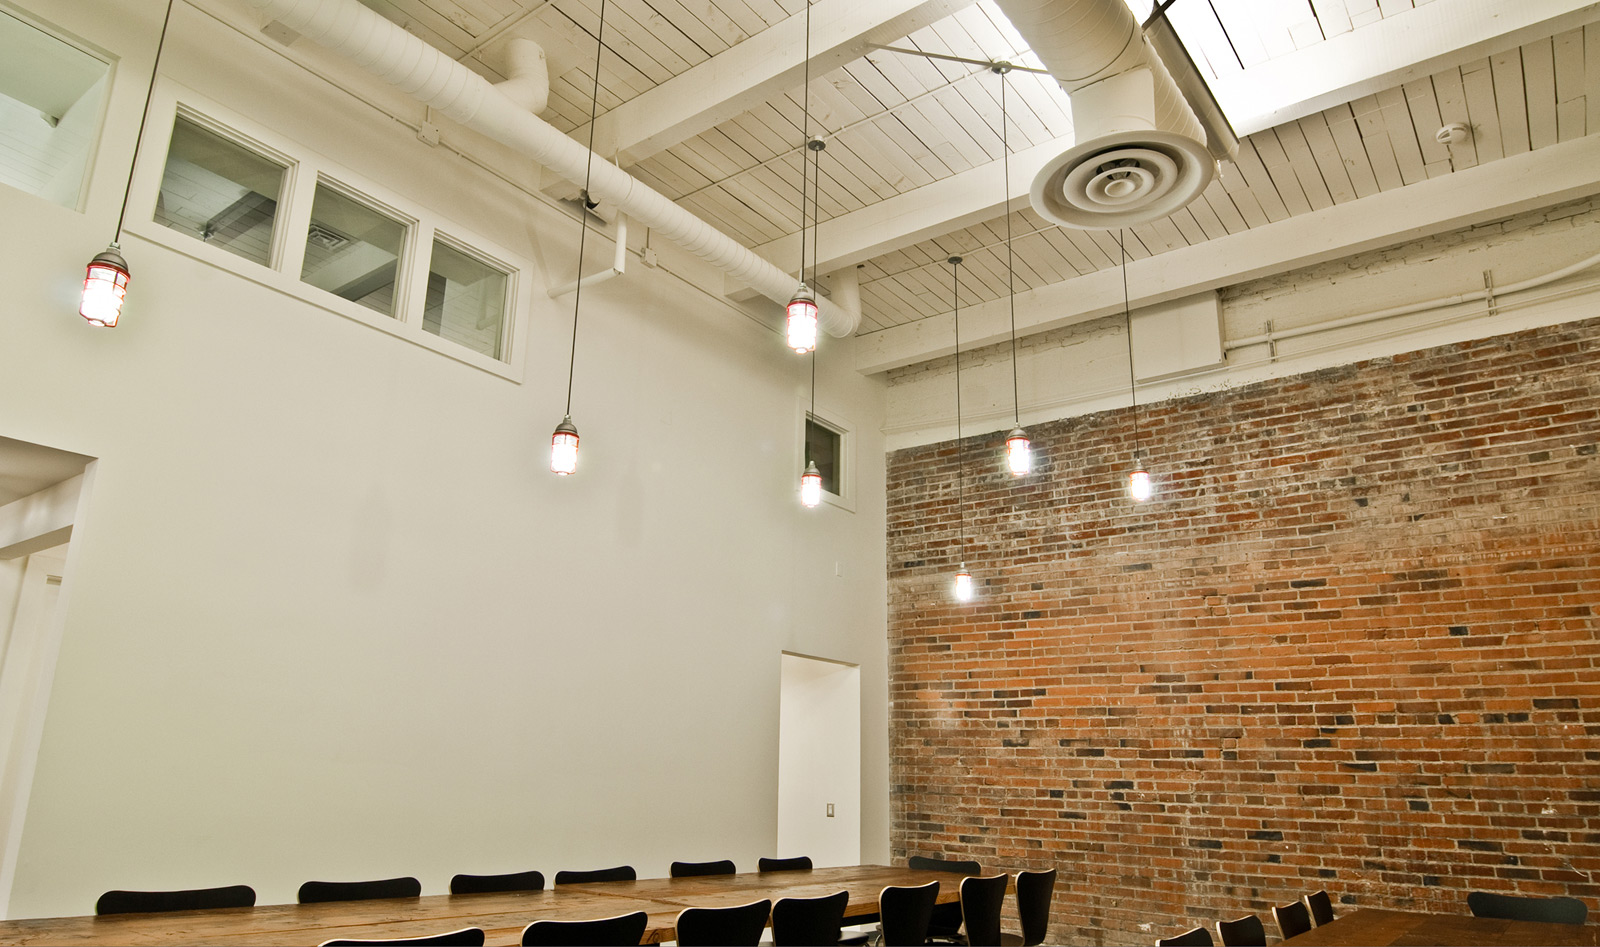 Commercial Fluorescent Lighting Build Blog